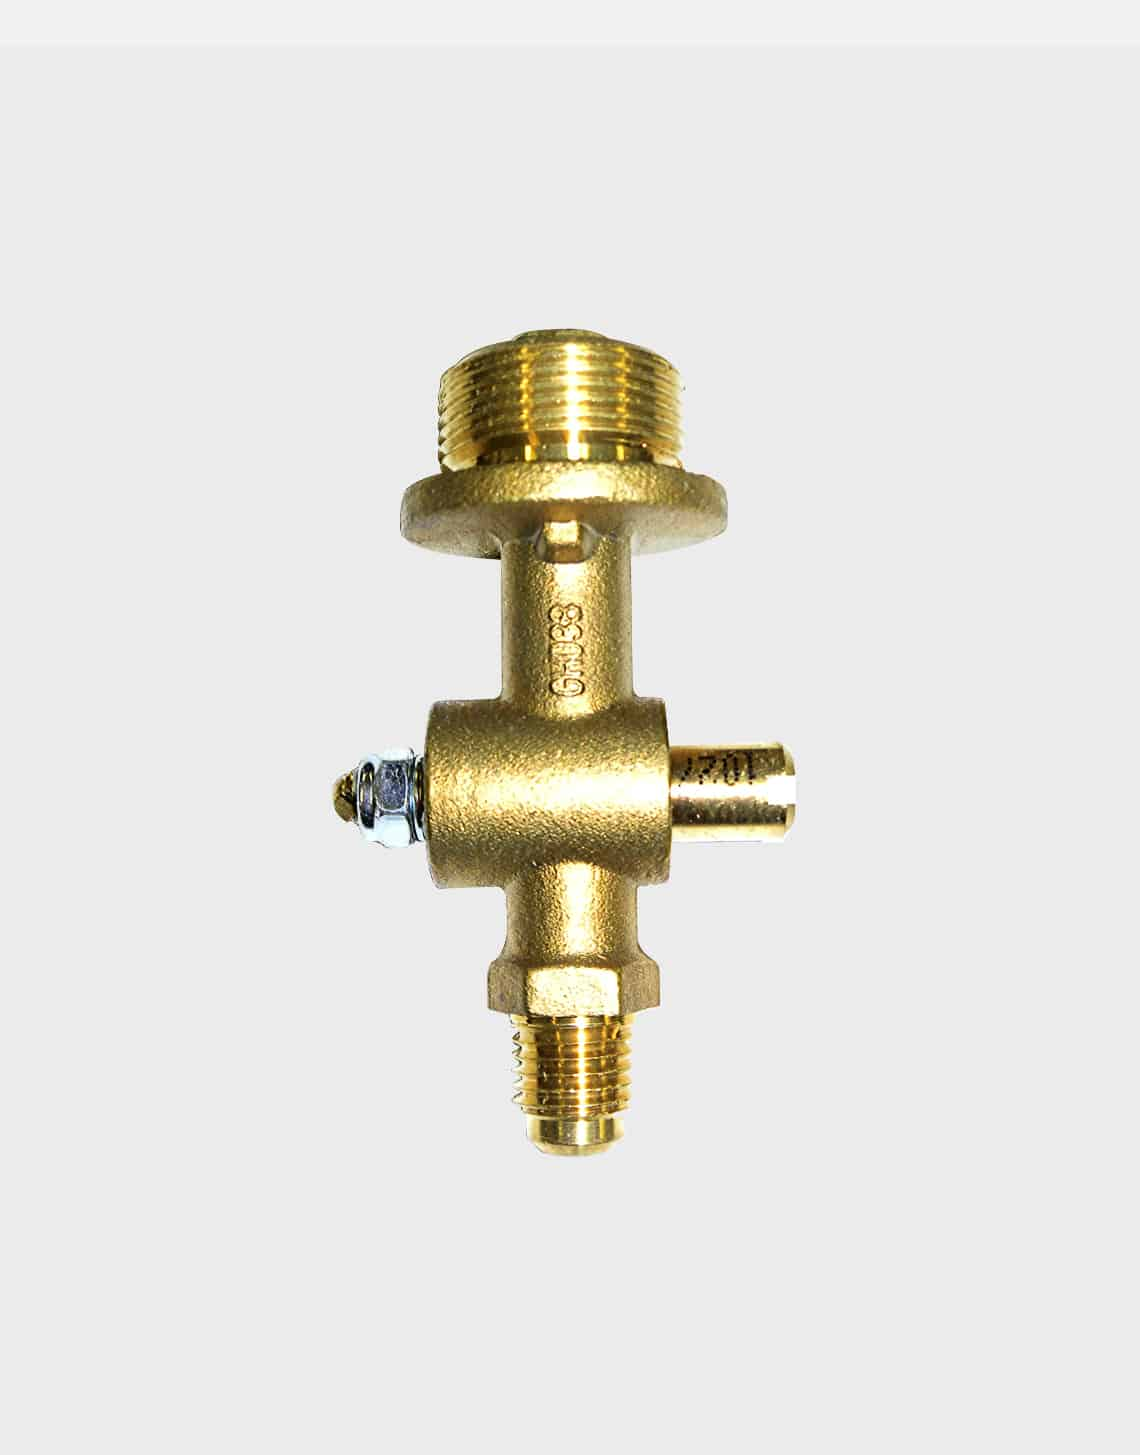 Outdoor Gas Lamp Valves Amp Parts American Gas Lamp Works